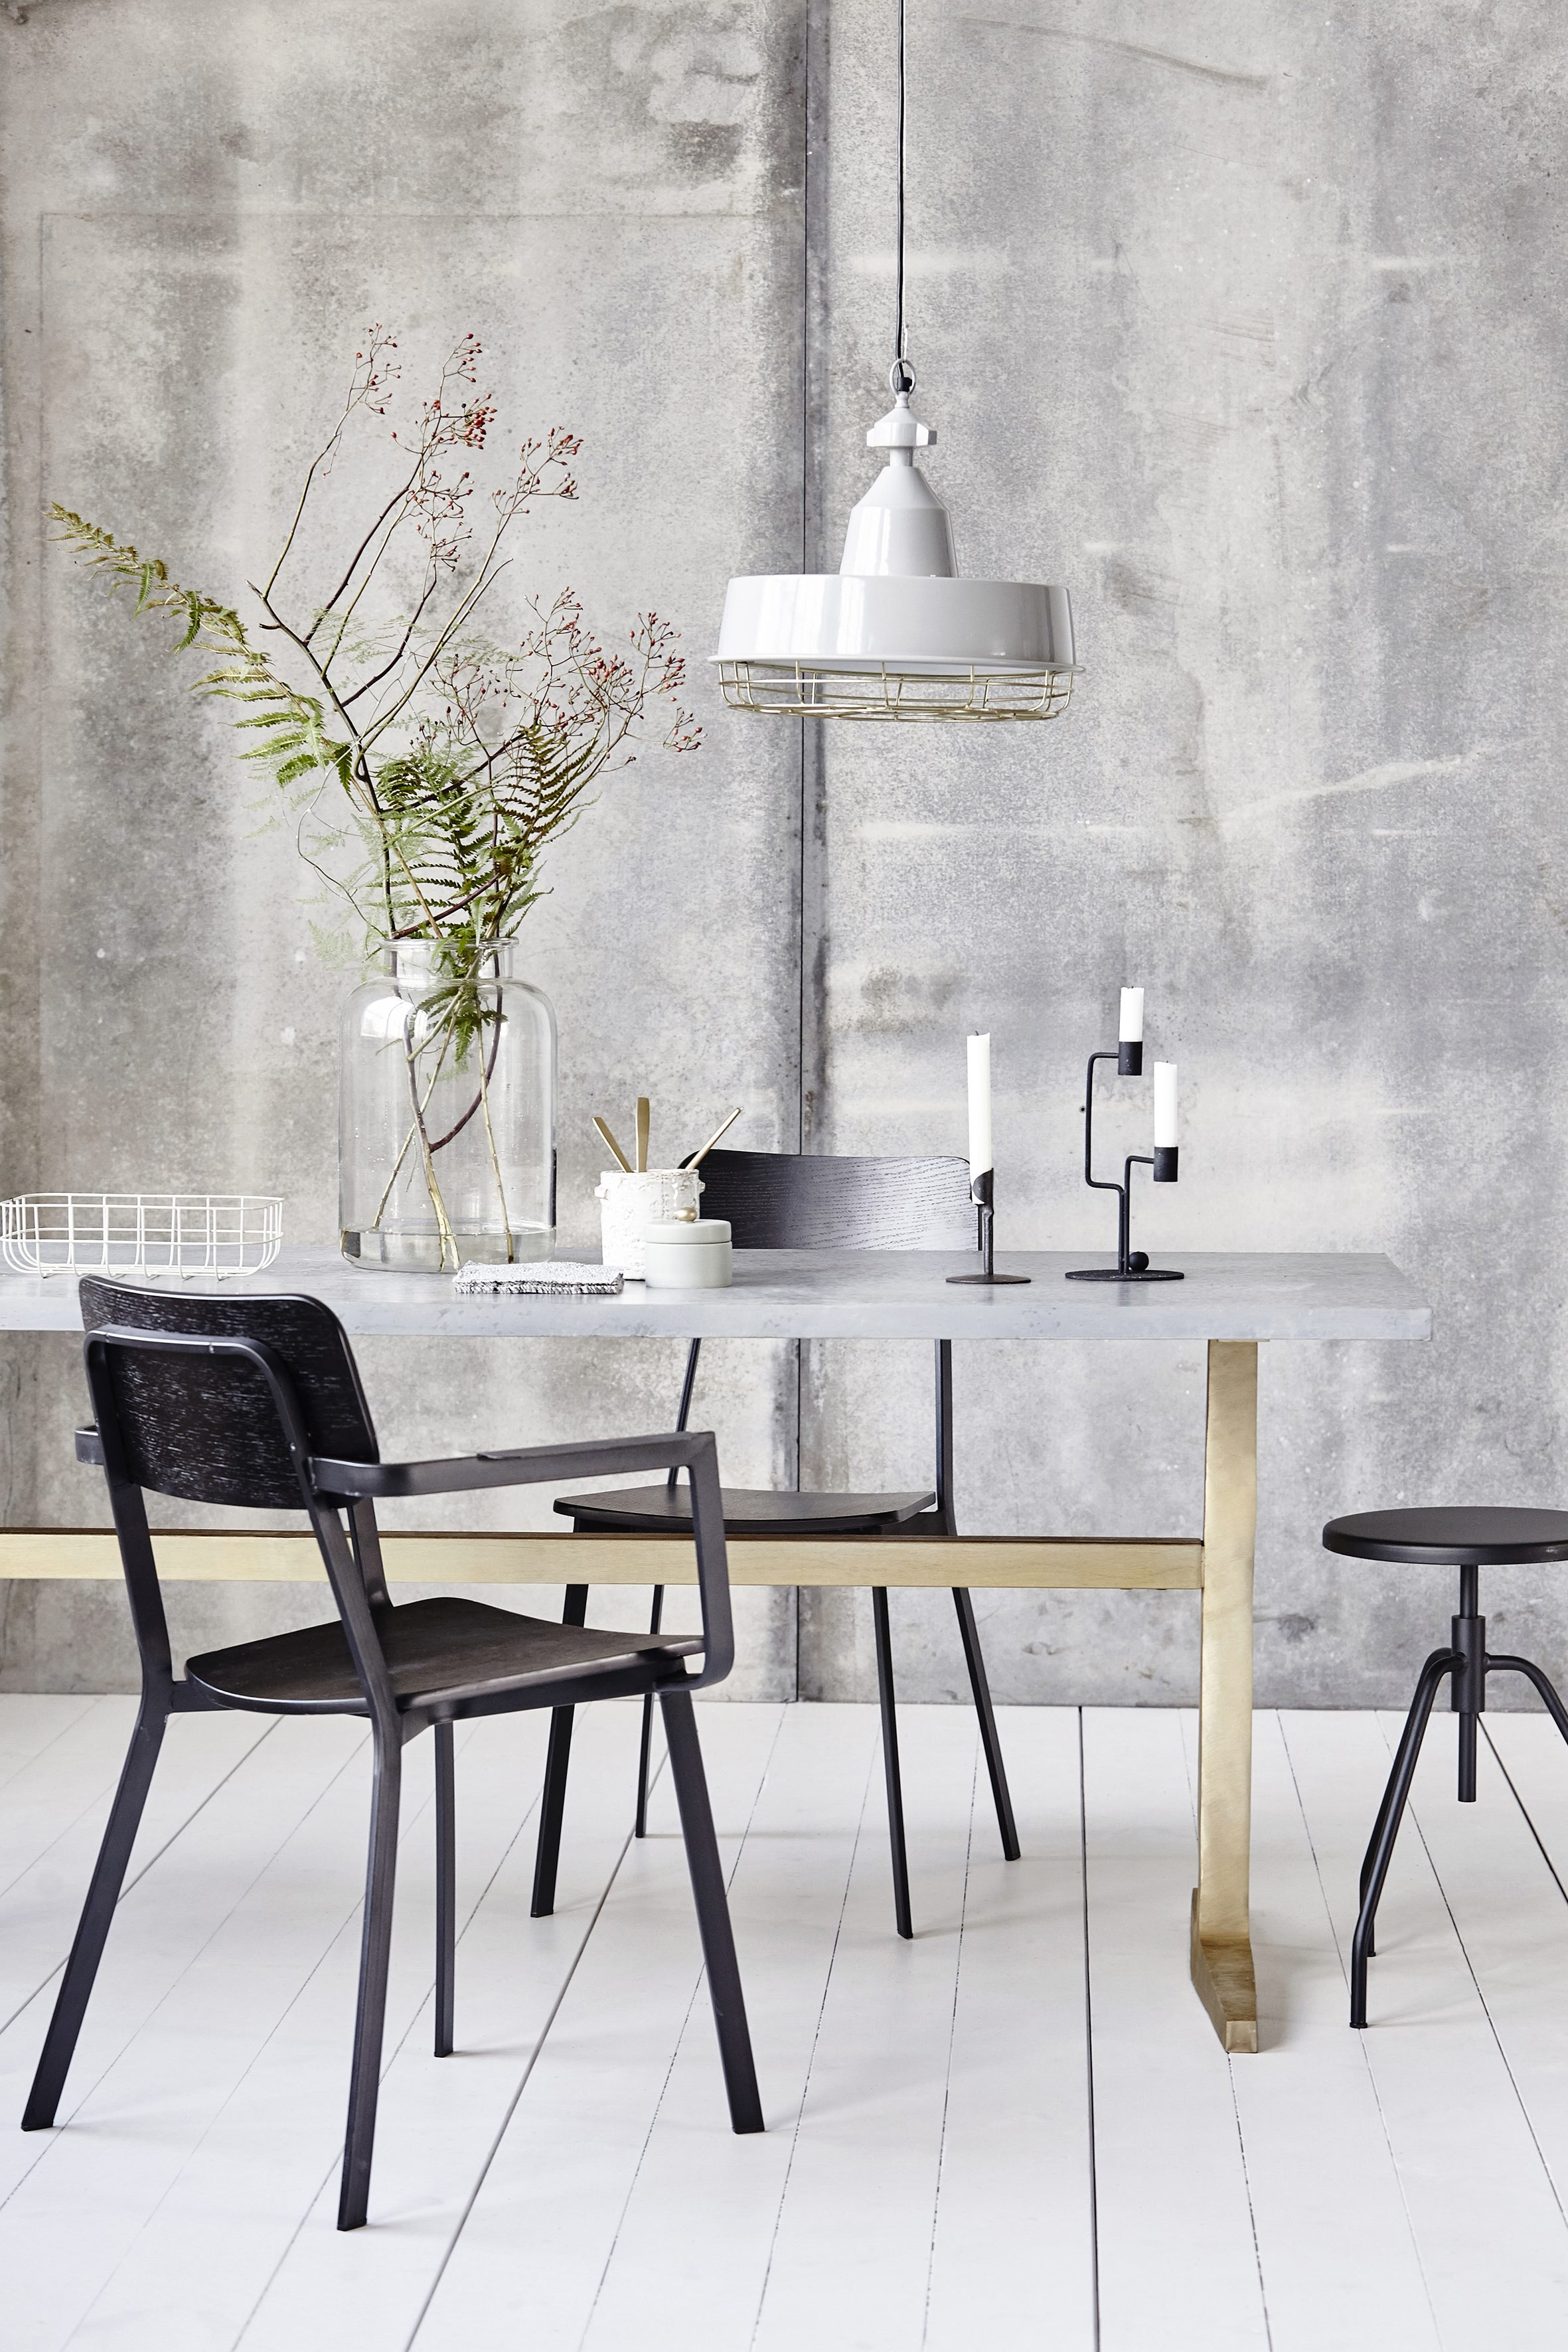 Dining Table with Zinc Top and Brass Legs by House Doctor | © ARBOL House